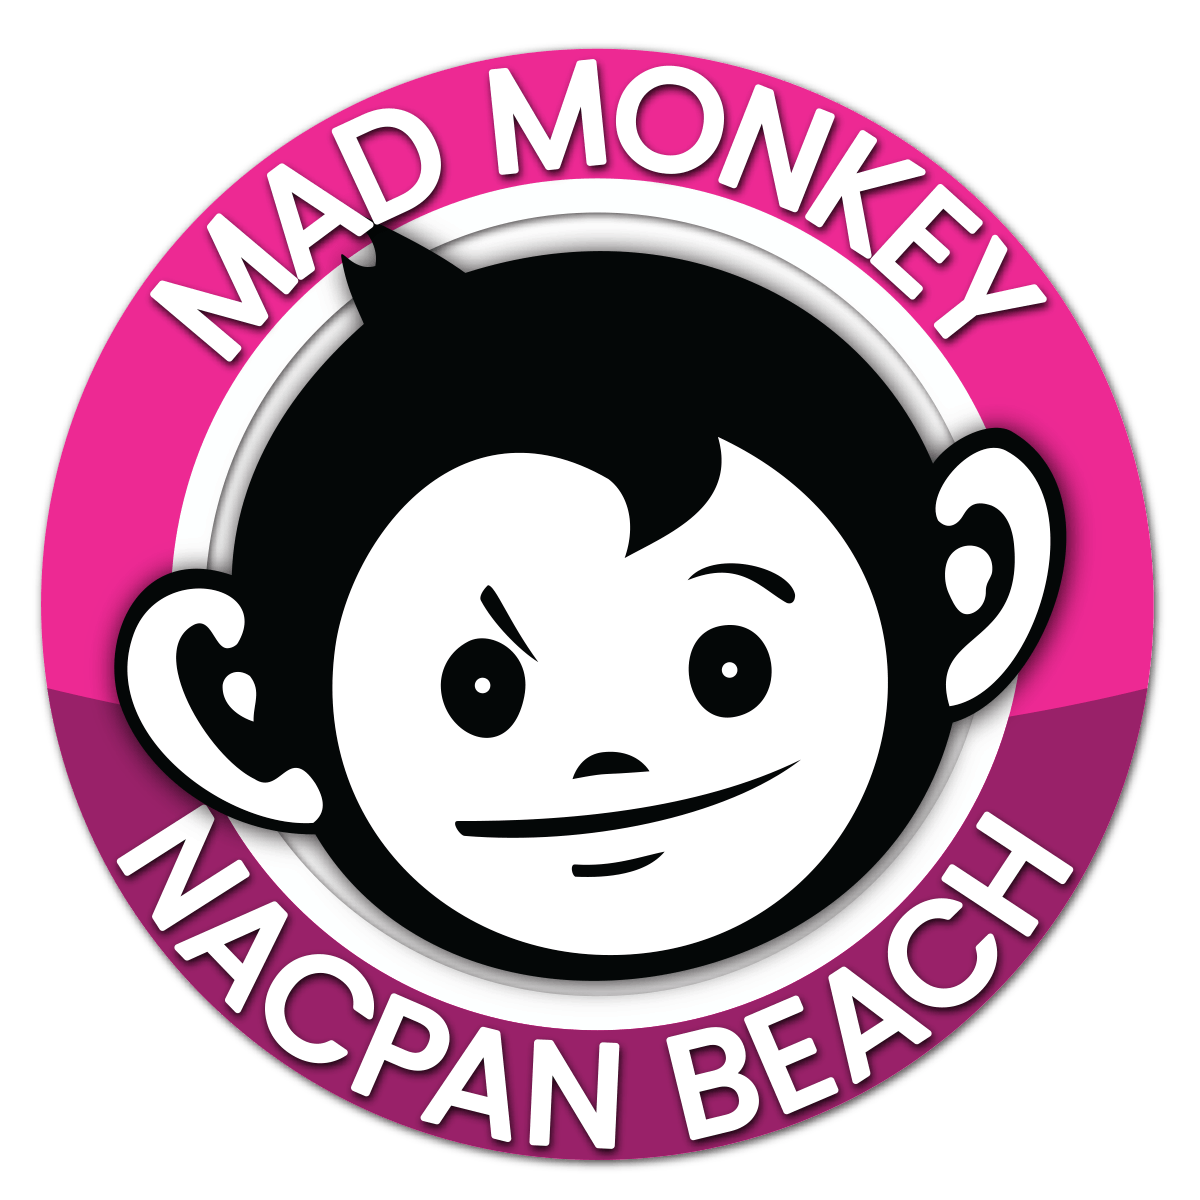 Mad Monkey Nacpan, Philippines